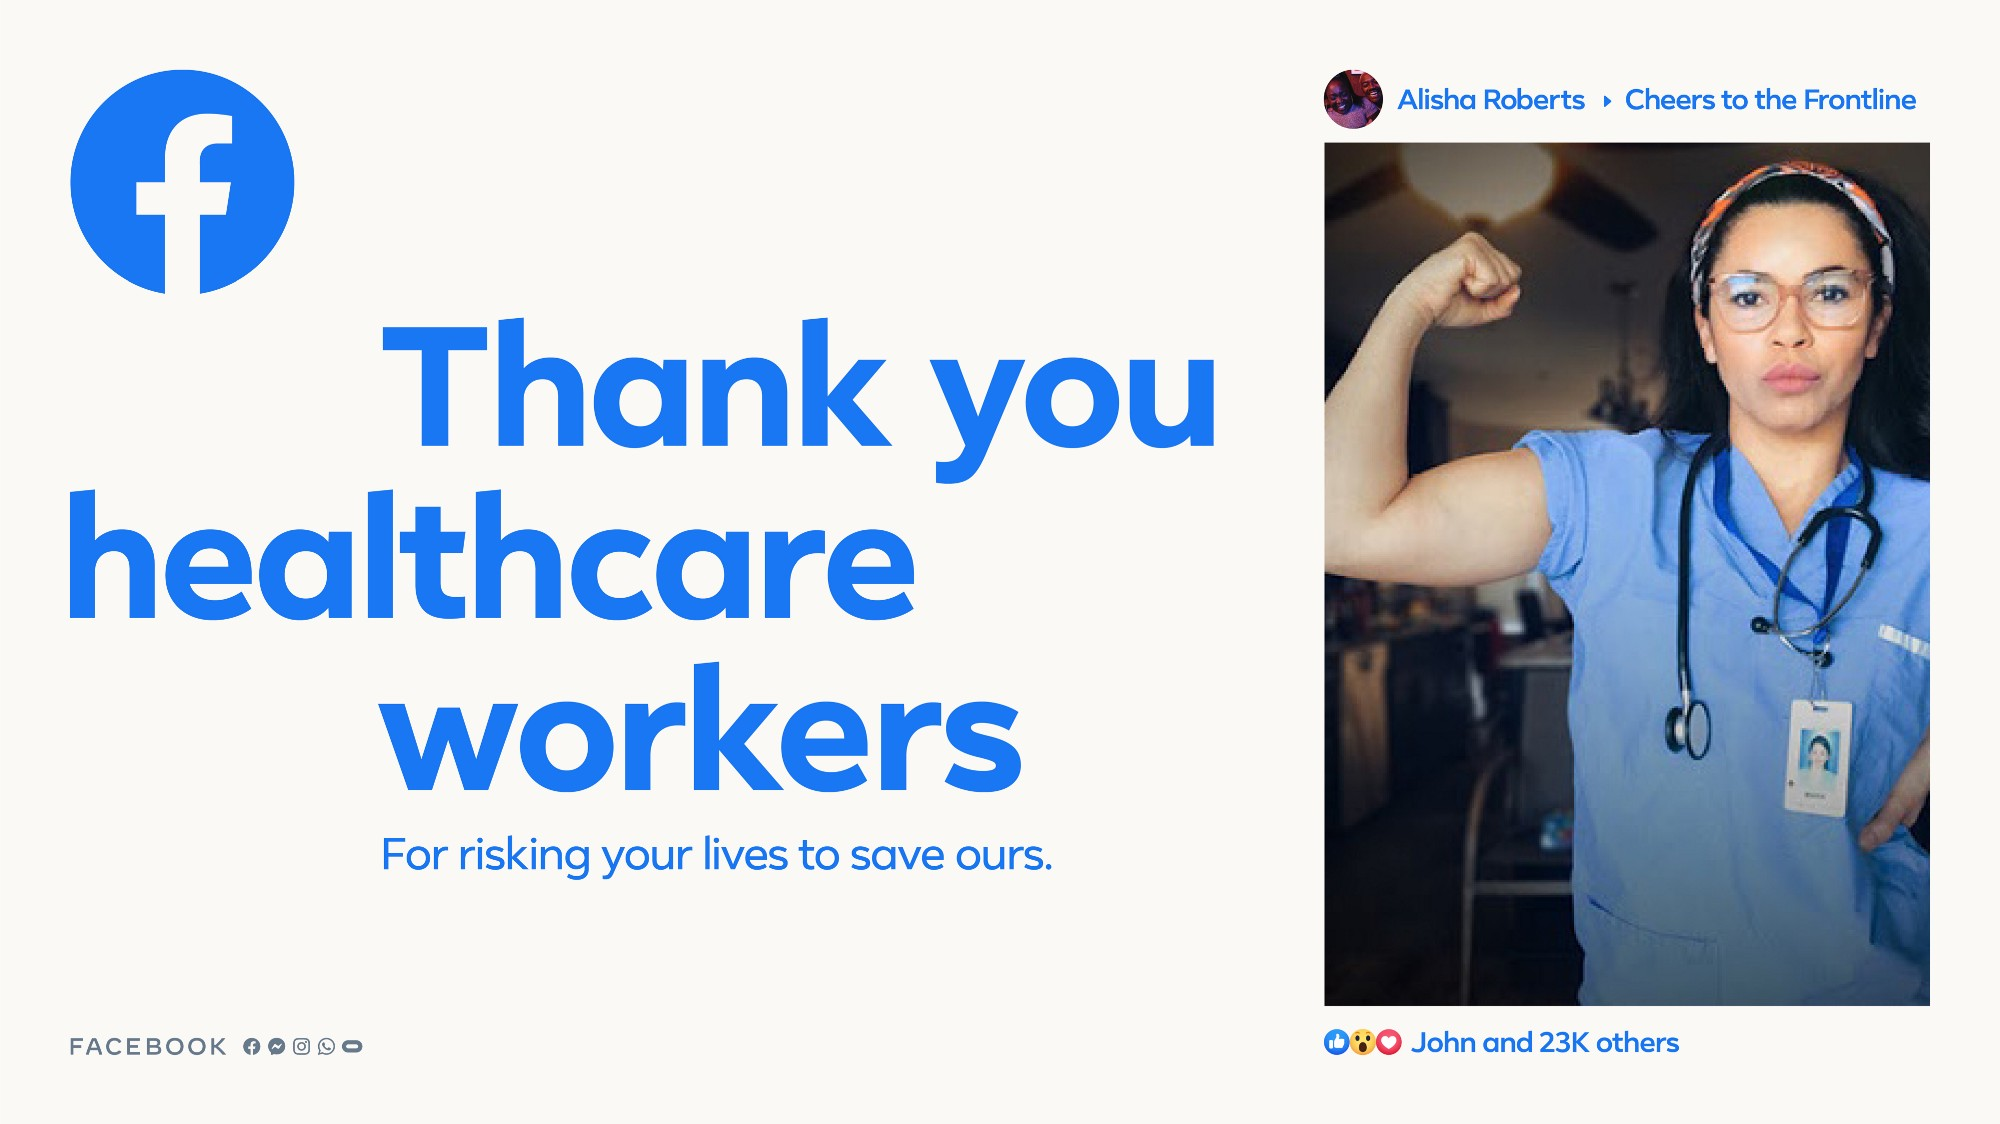 A More Together campaign piece shows a photo of a health care worker flexing their arm muscle.